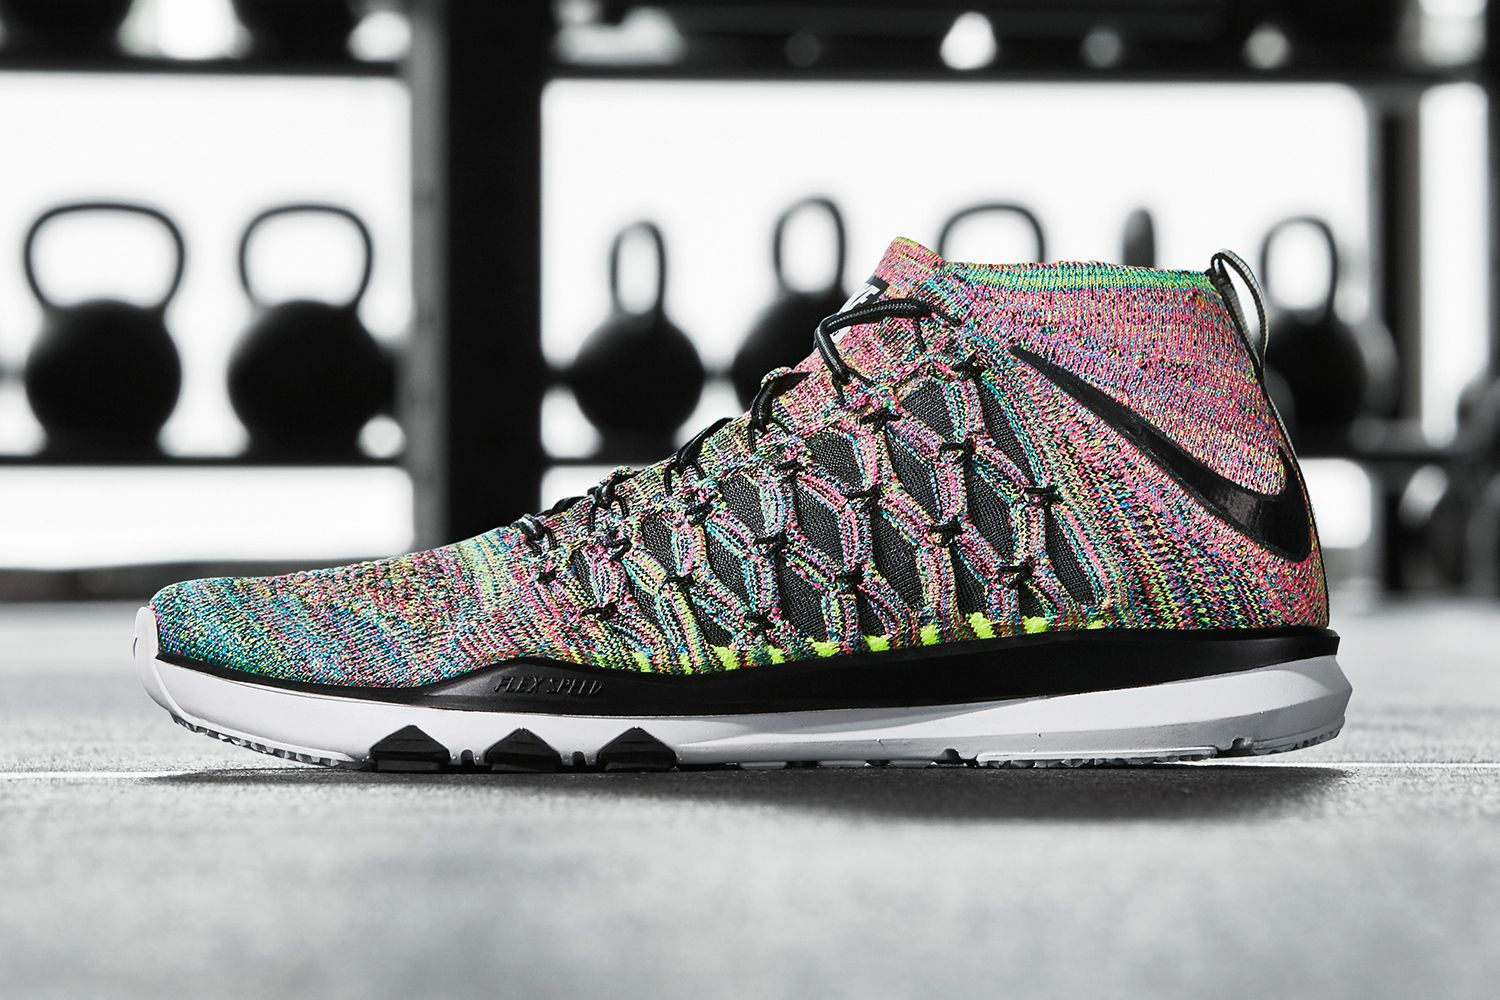 The Nike Train Ultrafast Flyknit Gets A Multicolor Makeover - MISSBISH  03ec7f4ef